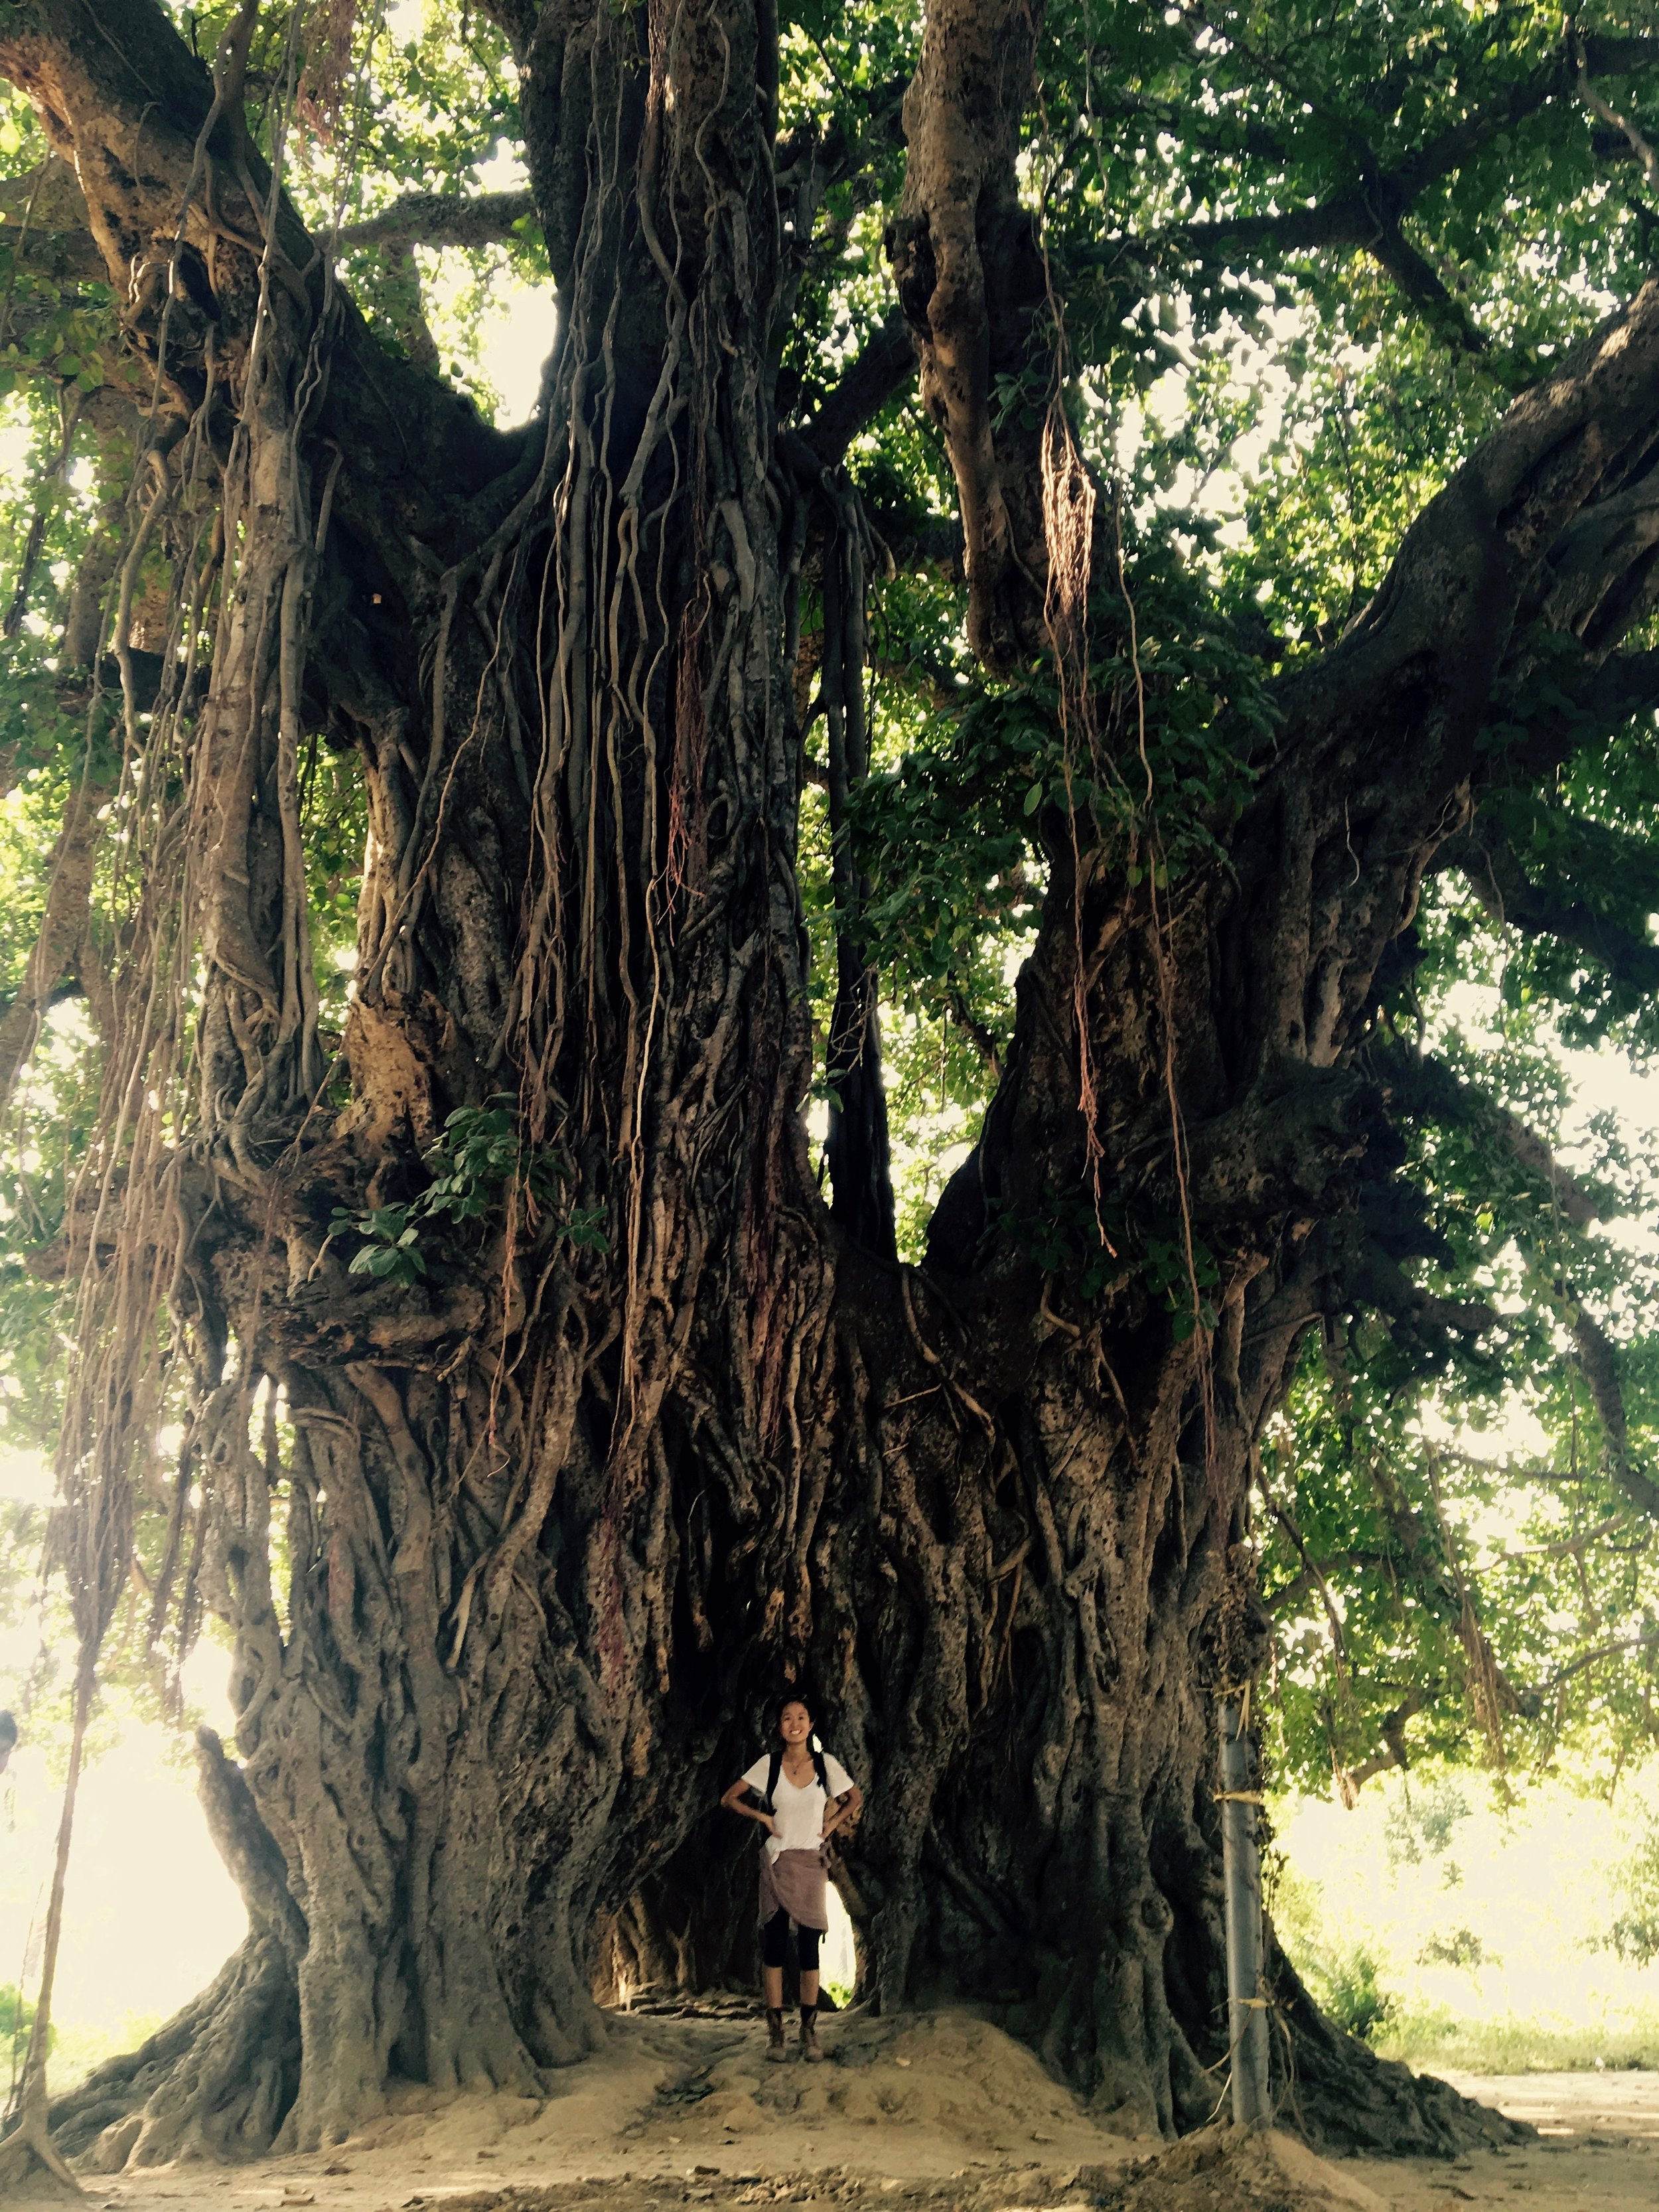 Me and the Banyan tree - 28 vs. 1000 years old. See those long skinny trunks surrounding the tree? Those are roots that have come from within the tree and sprouted back out and into the earth. Sustenance to keep the tree alive and running.